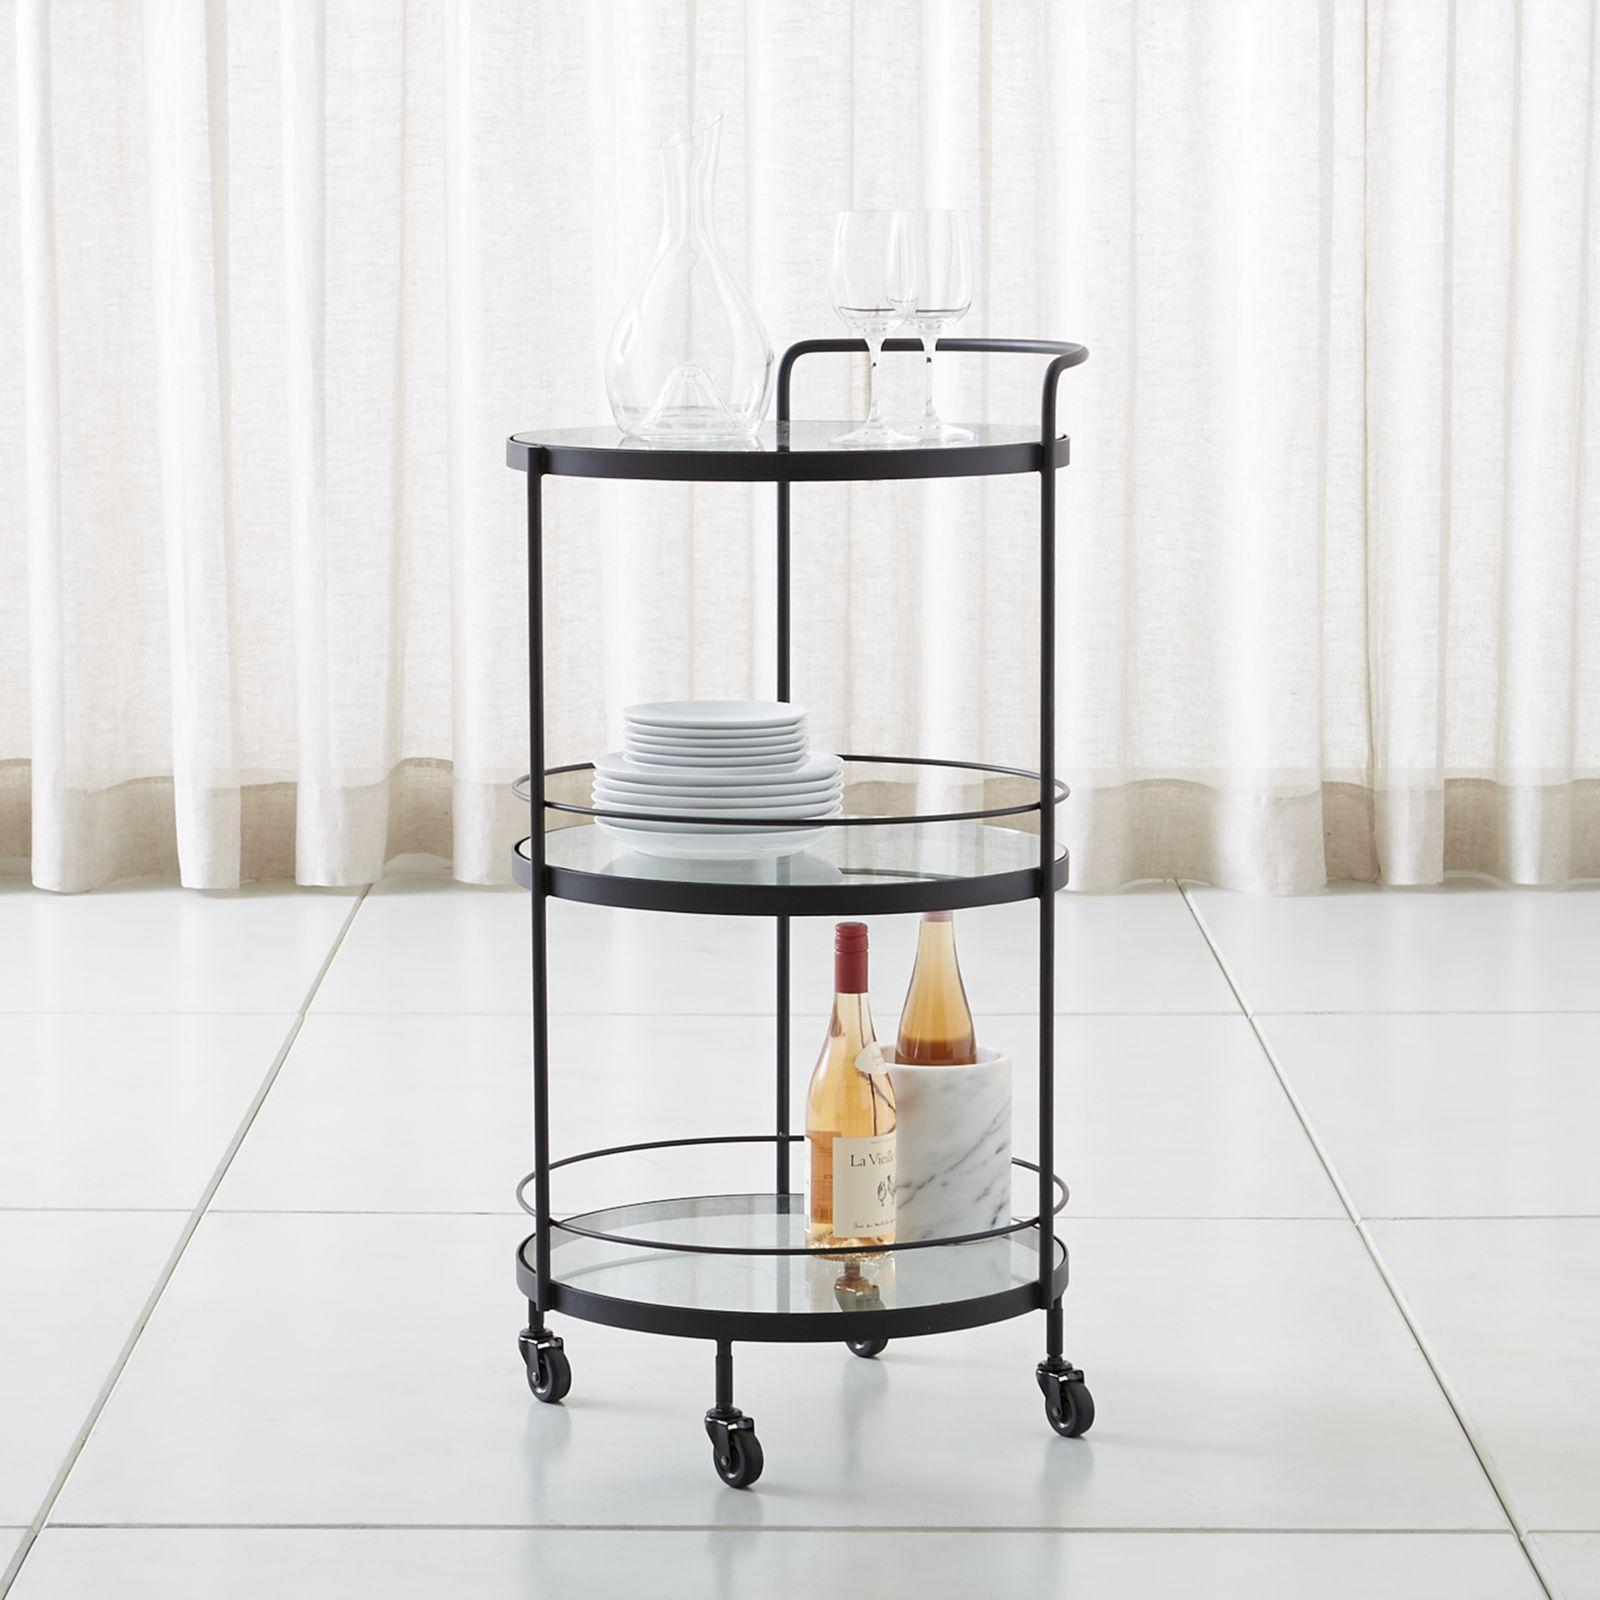 Noir Round Bar Cart by Crate and Barrel | Wedding Planning, Registry & Gifts